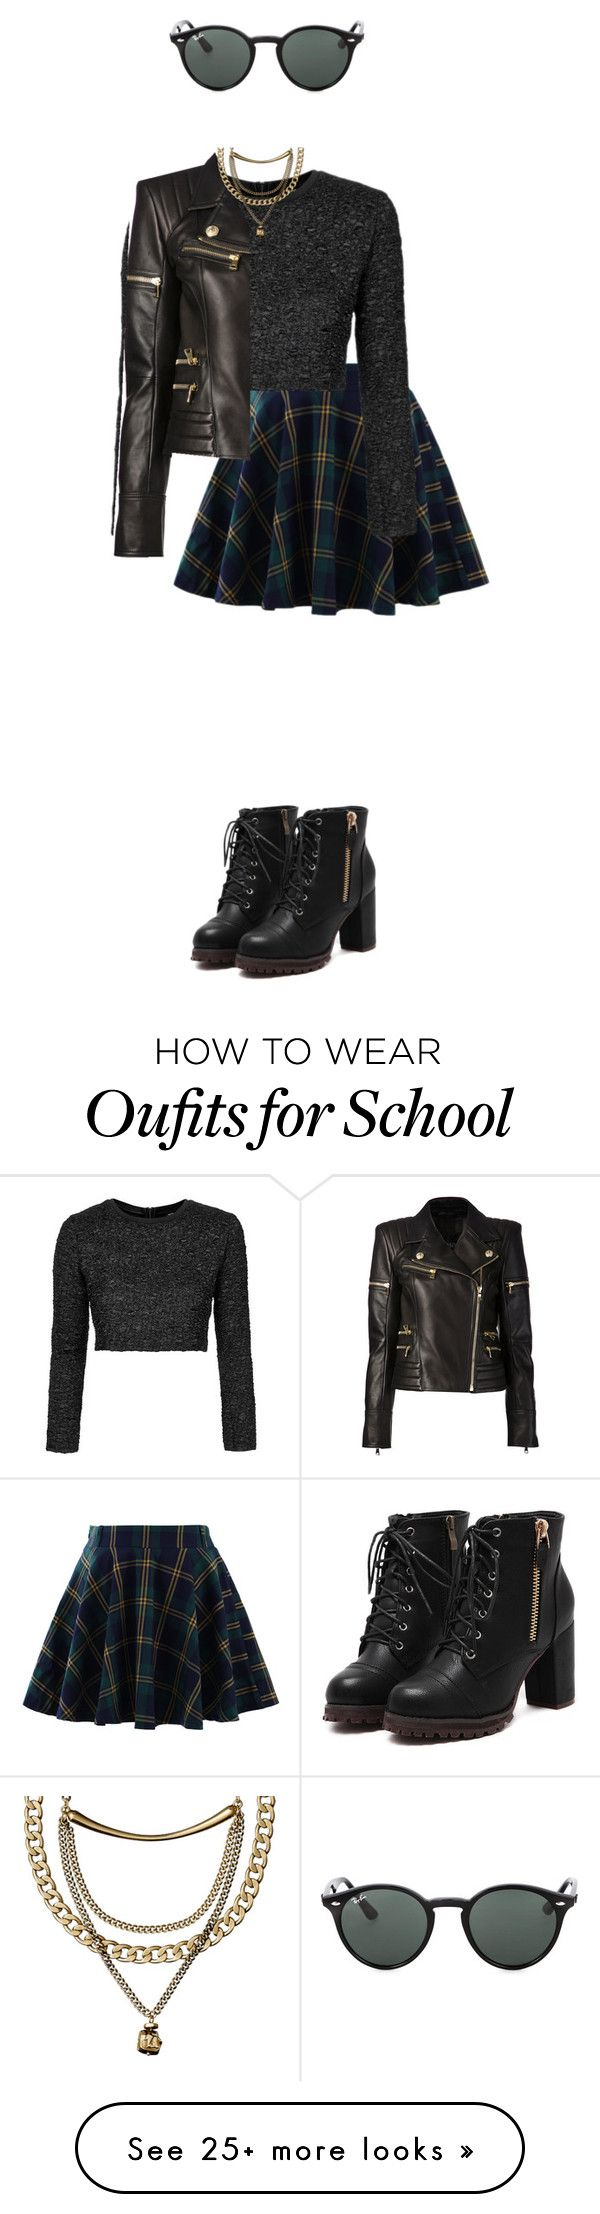 the school badass by sushi-brain on Polyvore featuring Chicwish, Topshop, Balmain and Ray-Ban